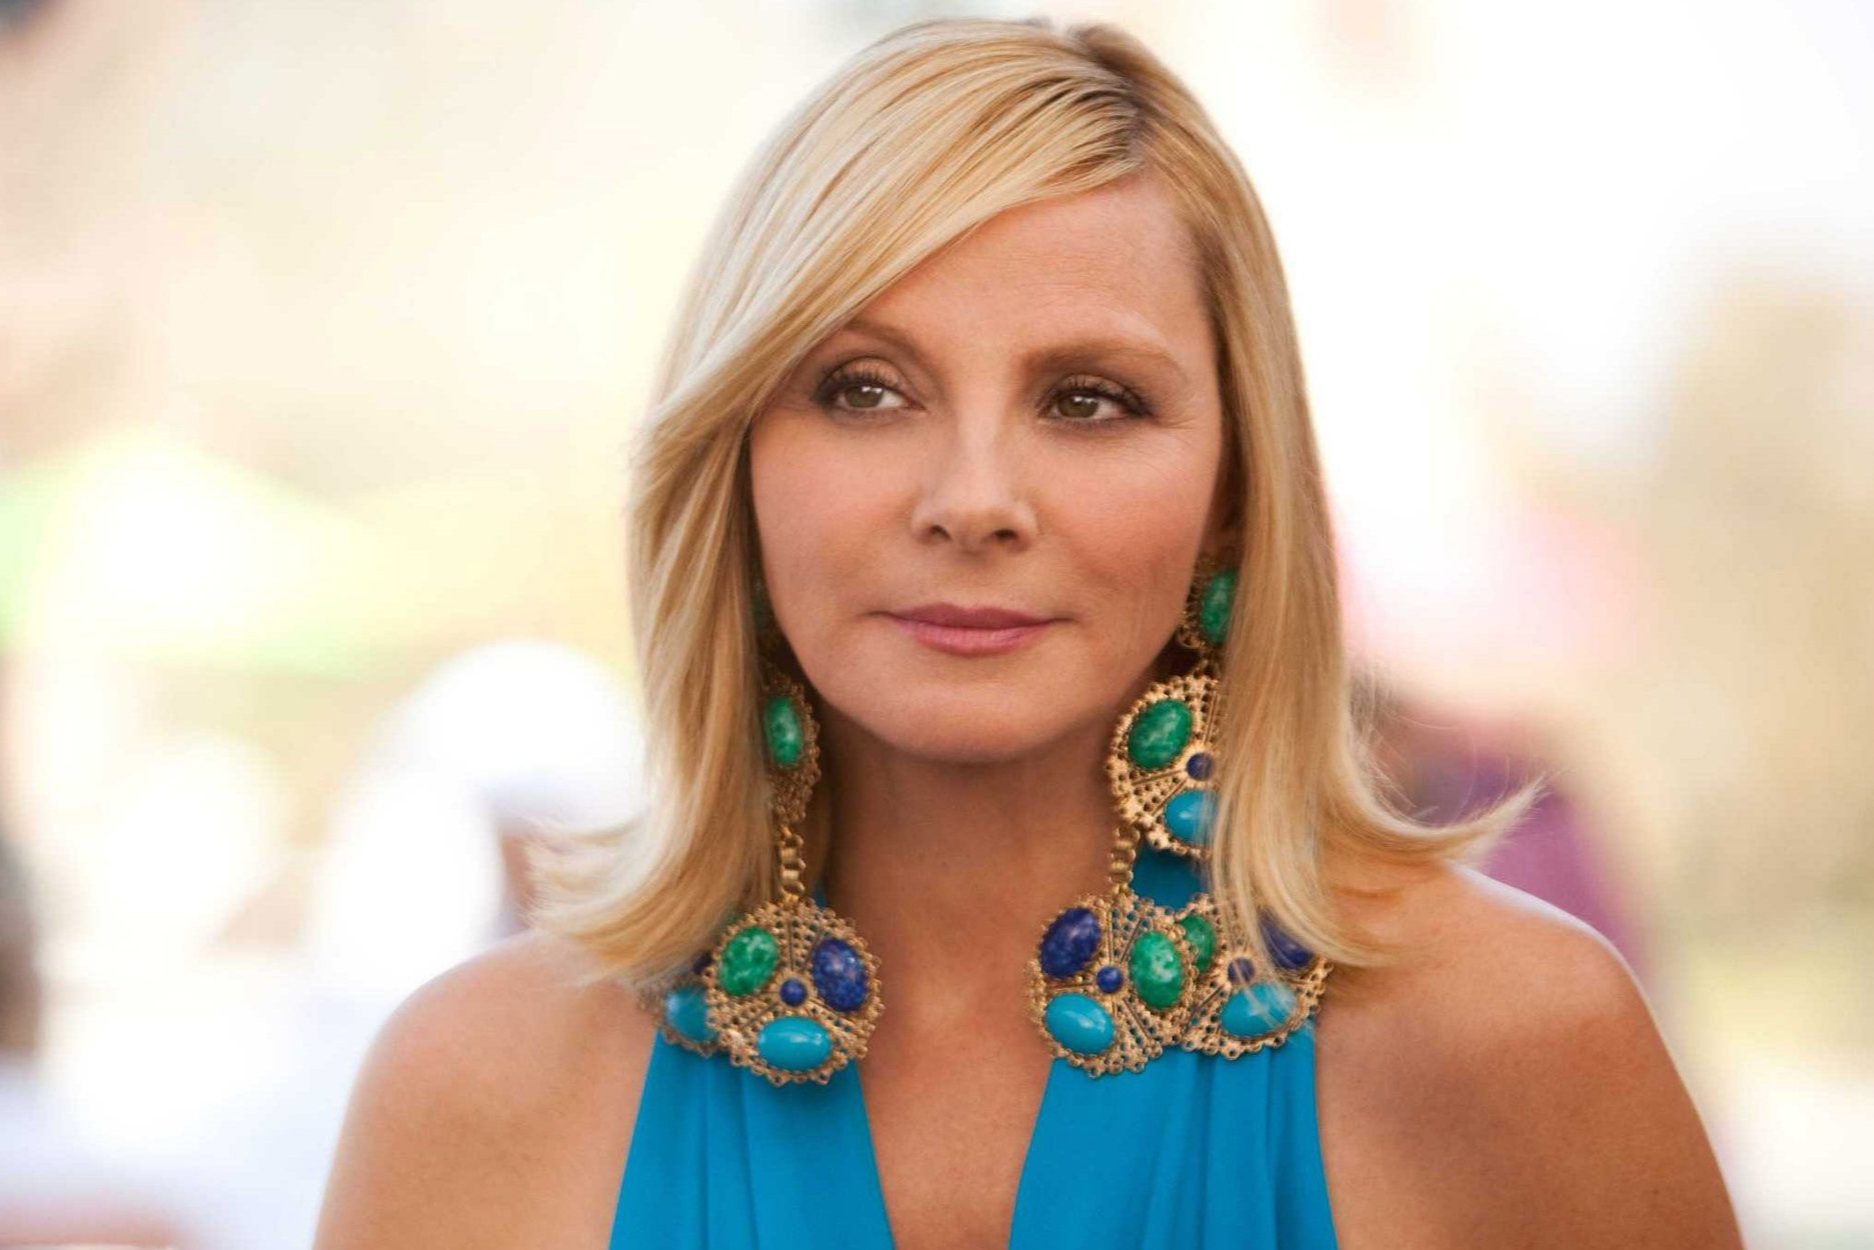 TAKE ACTION    Tweet Kim Cattrall and beg her to change her mind.